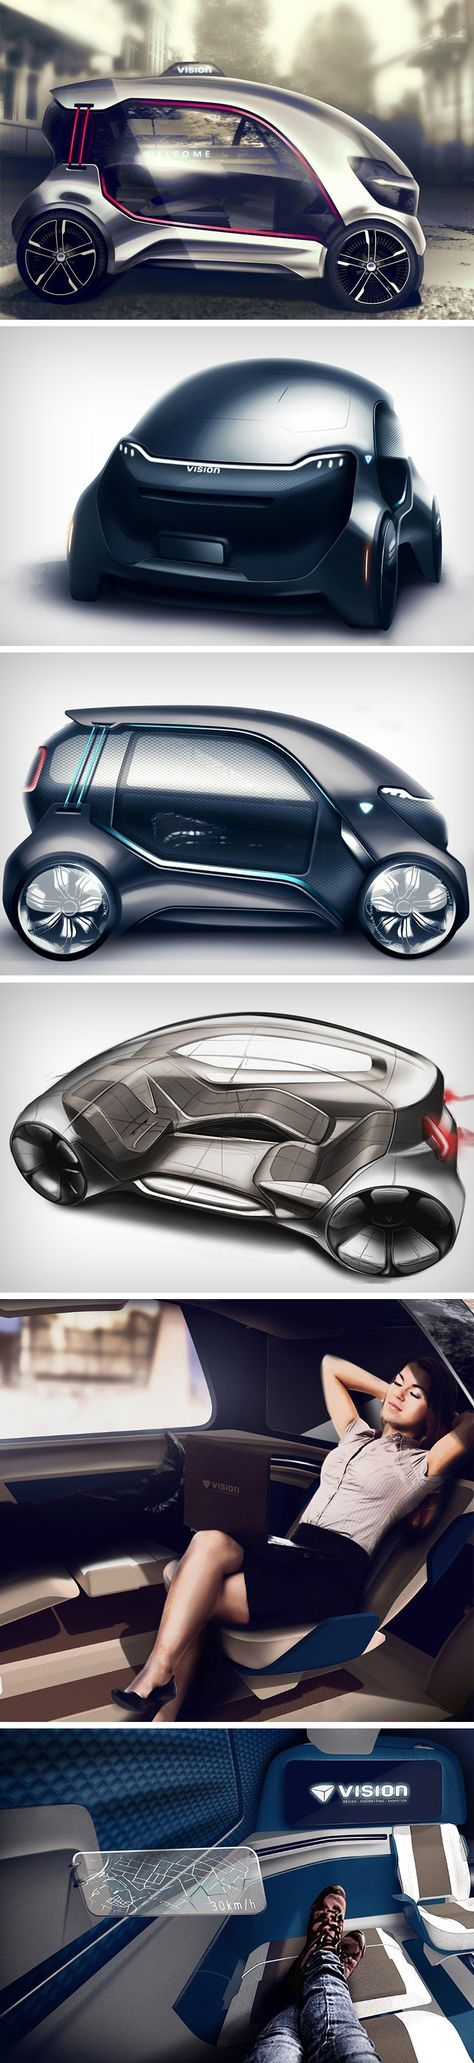 The Vision City Concept Car By Guilherme Kataoka Is Designed To Make Travel  A Different Experience To Commuters Who Will Now Ride To Places Instead Of  To ...